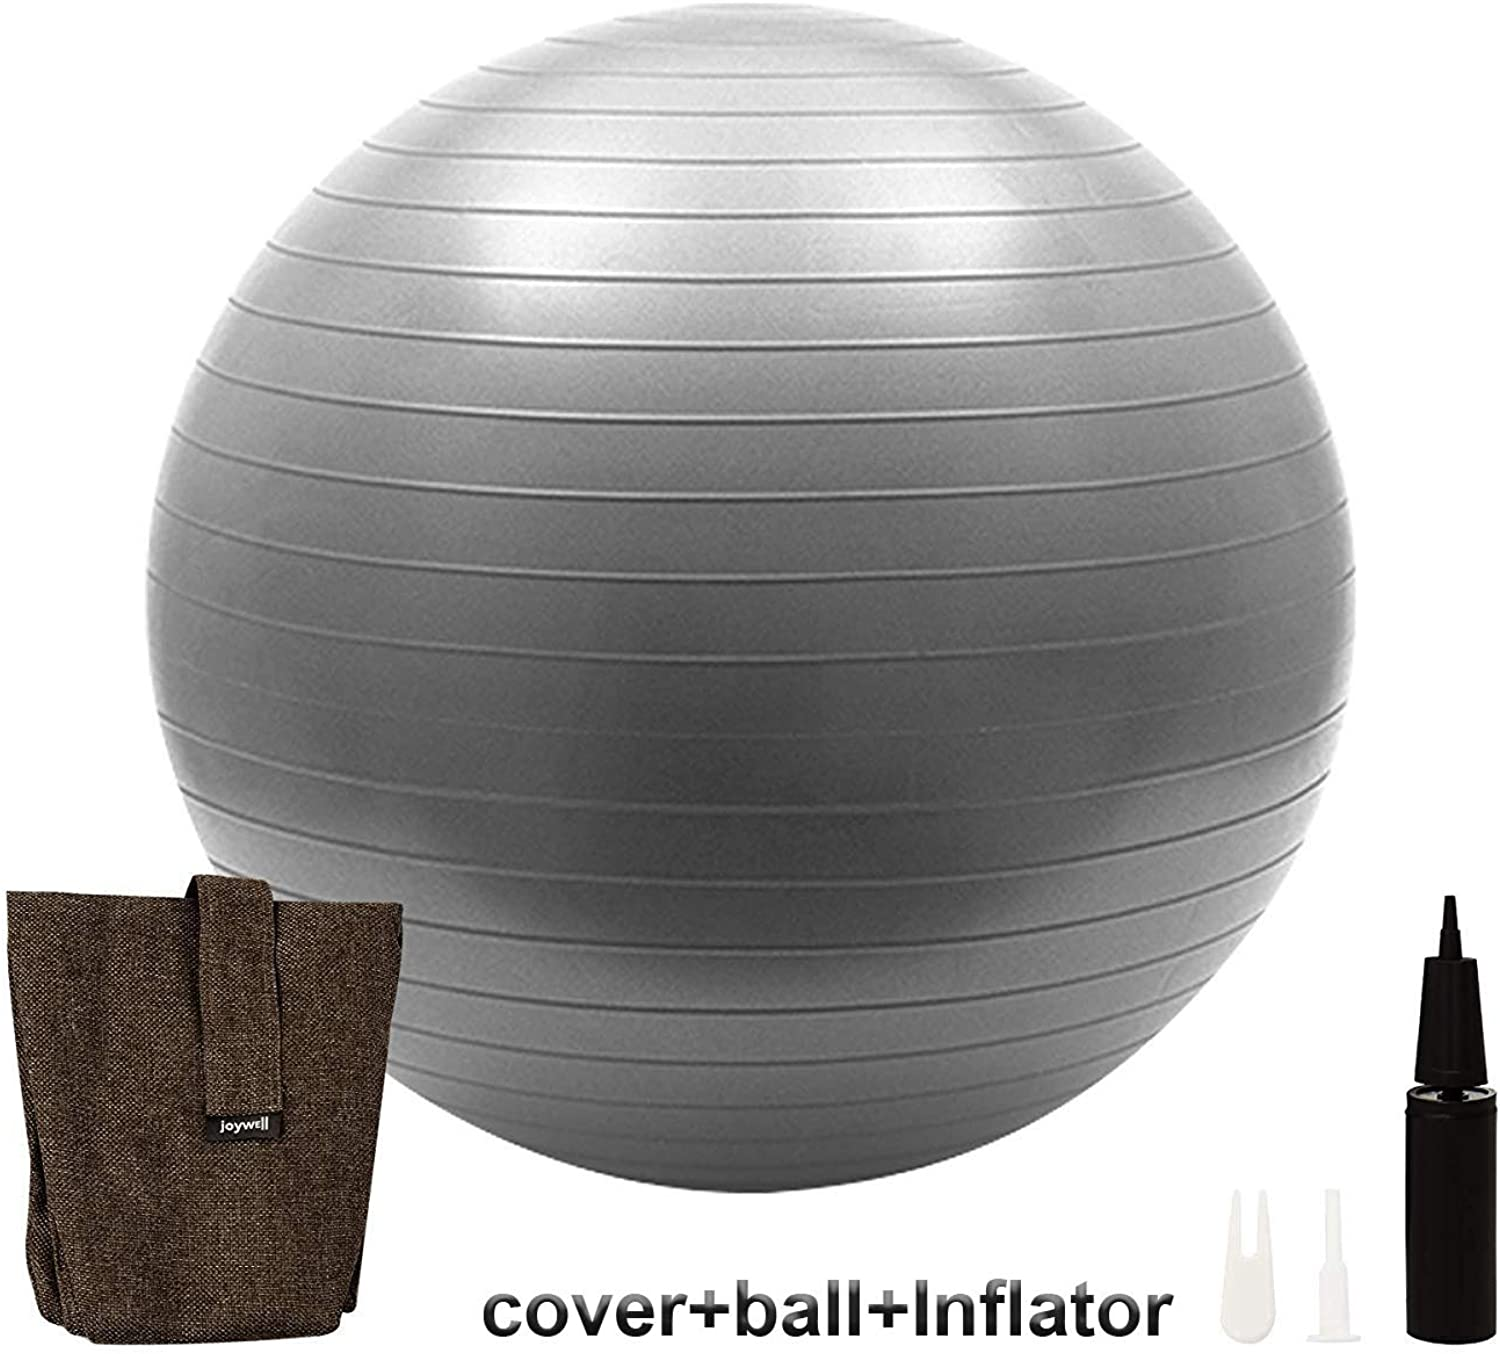 Joywell Exercise Ball with Multifunctional Cover Included Pump Yoga Fitness Stability Base Sitting Ball Chair for Office Home Indoor Outdoor (75CM Chocolate)